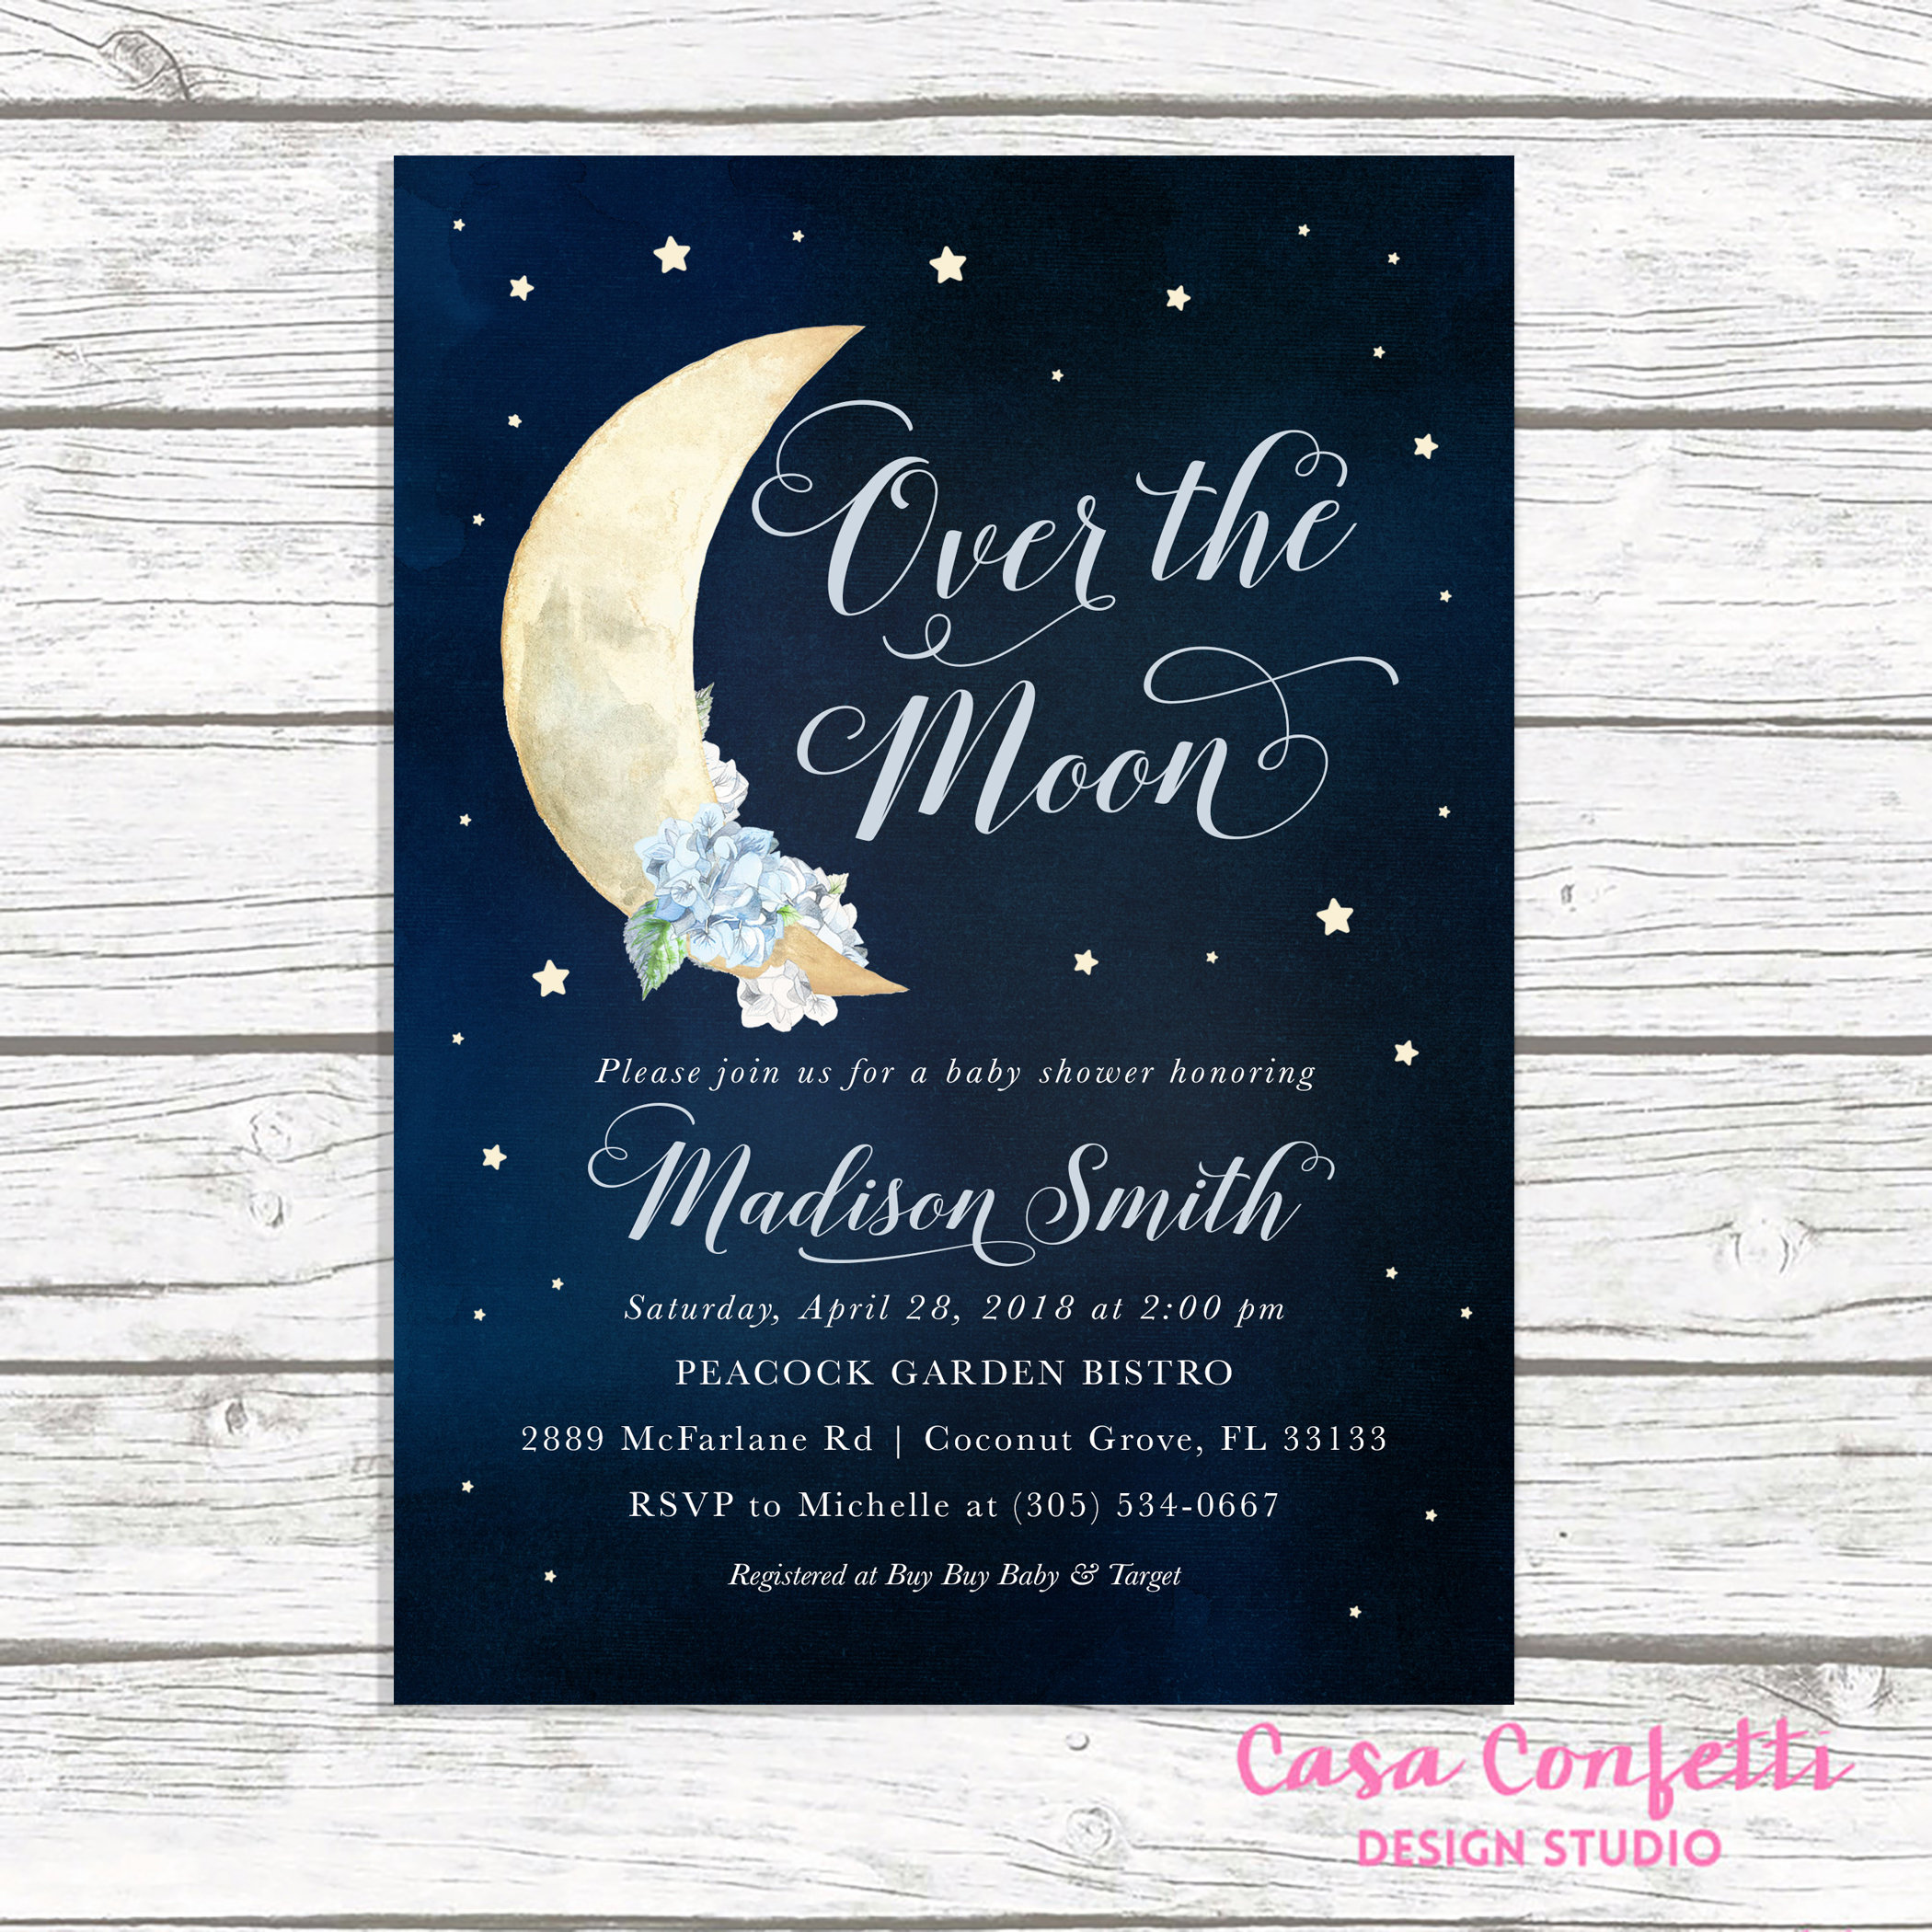 Over the moon baby shower invitation moon and stars baby shower over the moon baby shower invitation moon and stars baby shower invitation moon baby shower invite to the moon and back boy baby shower filmwisefo